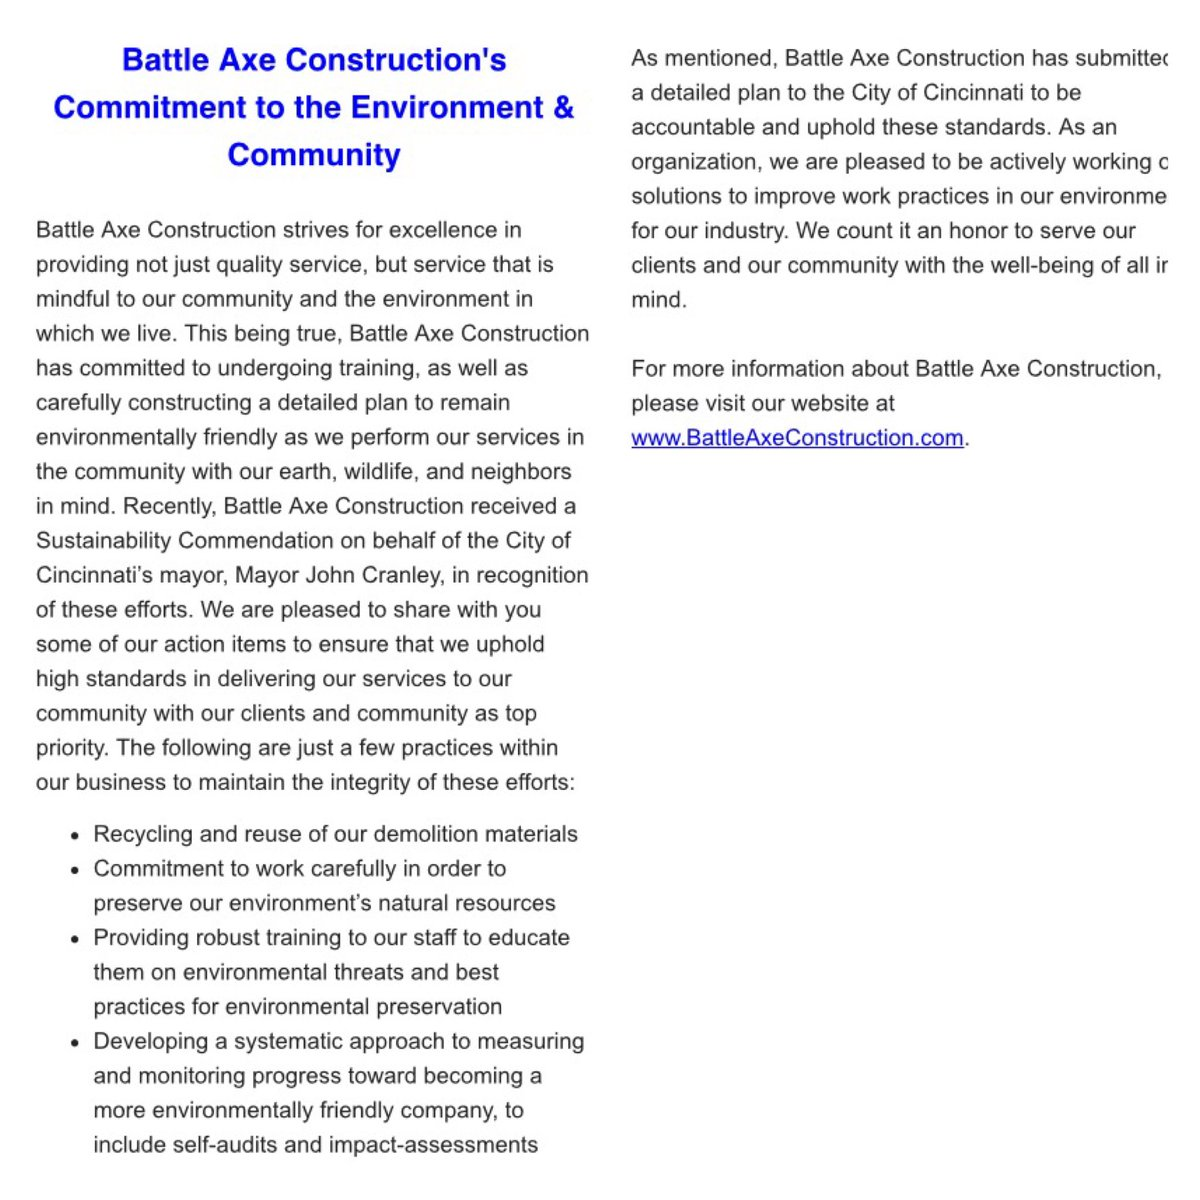 Battle Axe believes in preserving our environment! Check out our plan! #Construction #OhioConstruction #GeorgiaConstruction #GreenCompany <br>http://pic.twitter.com/m0E5AWROys